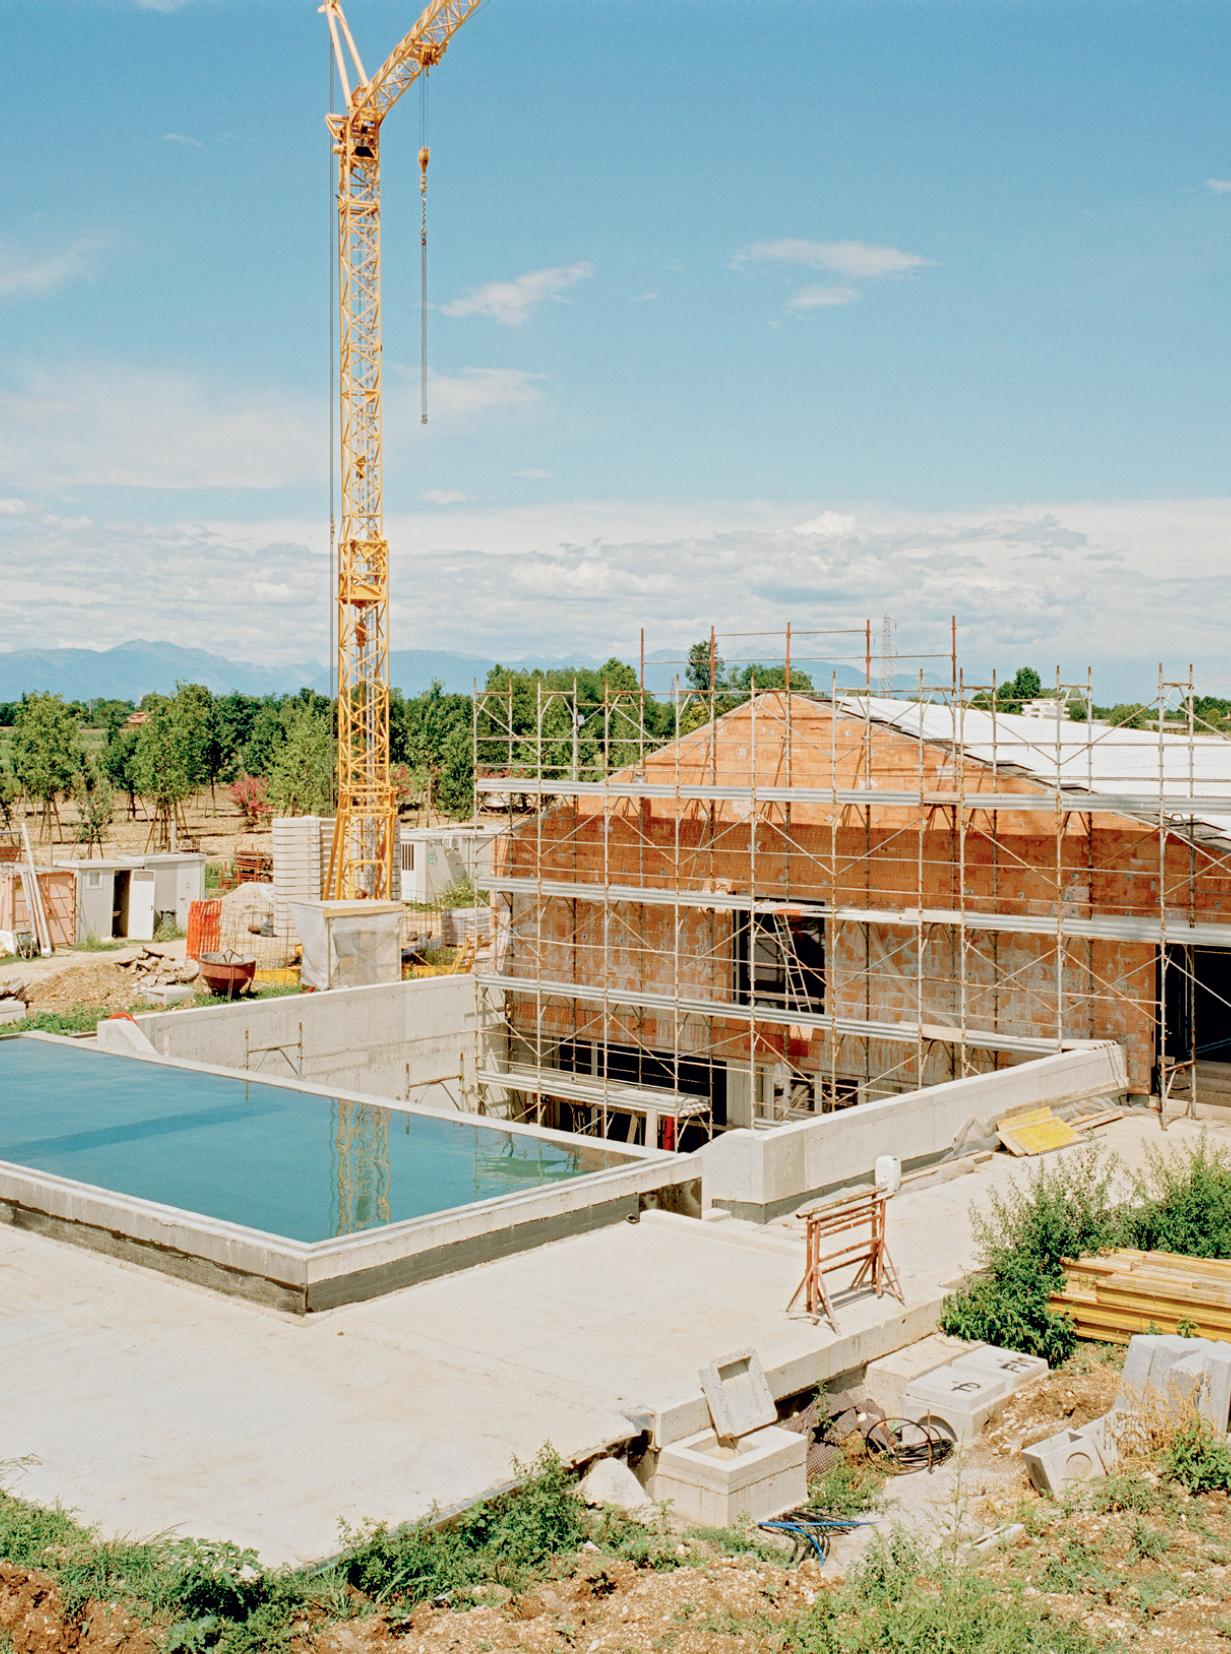 Casa delle Bottere swimming pool under construction by John Pawson